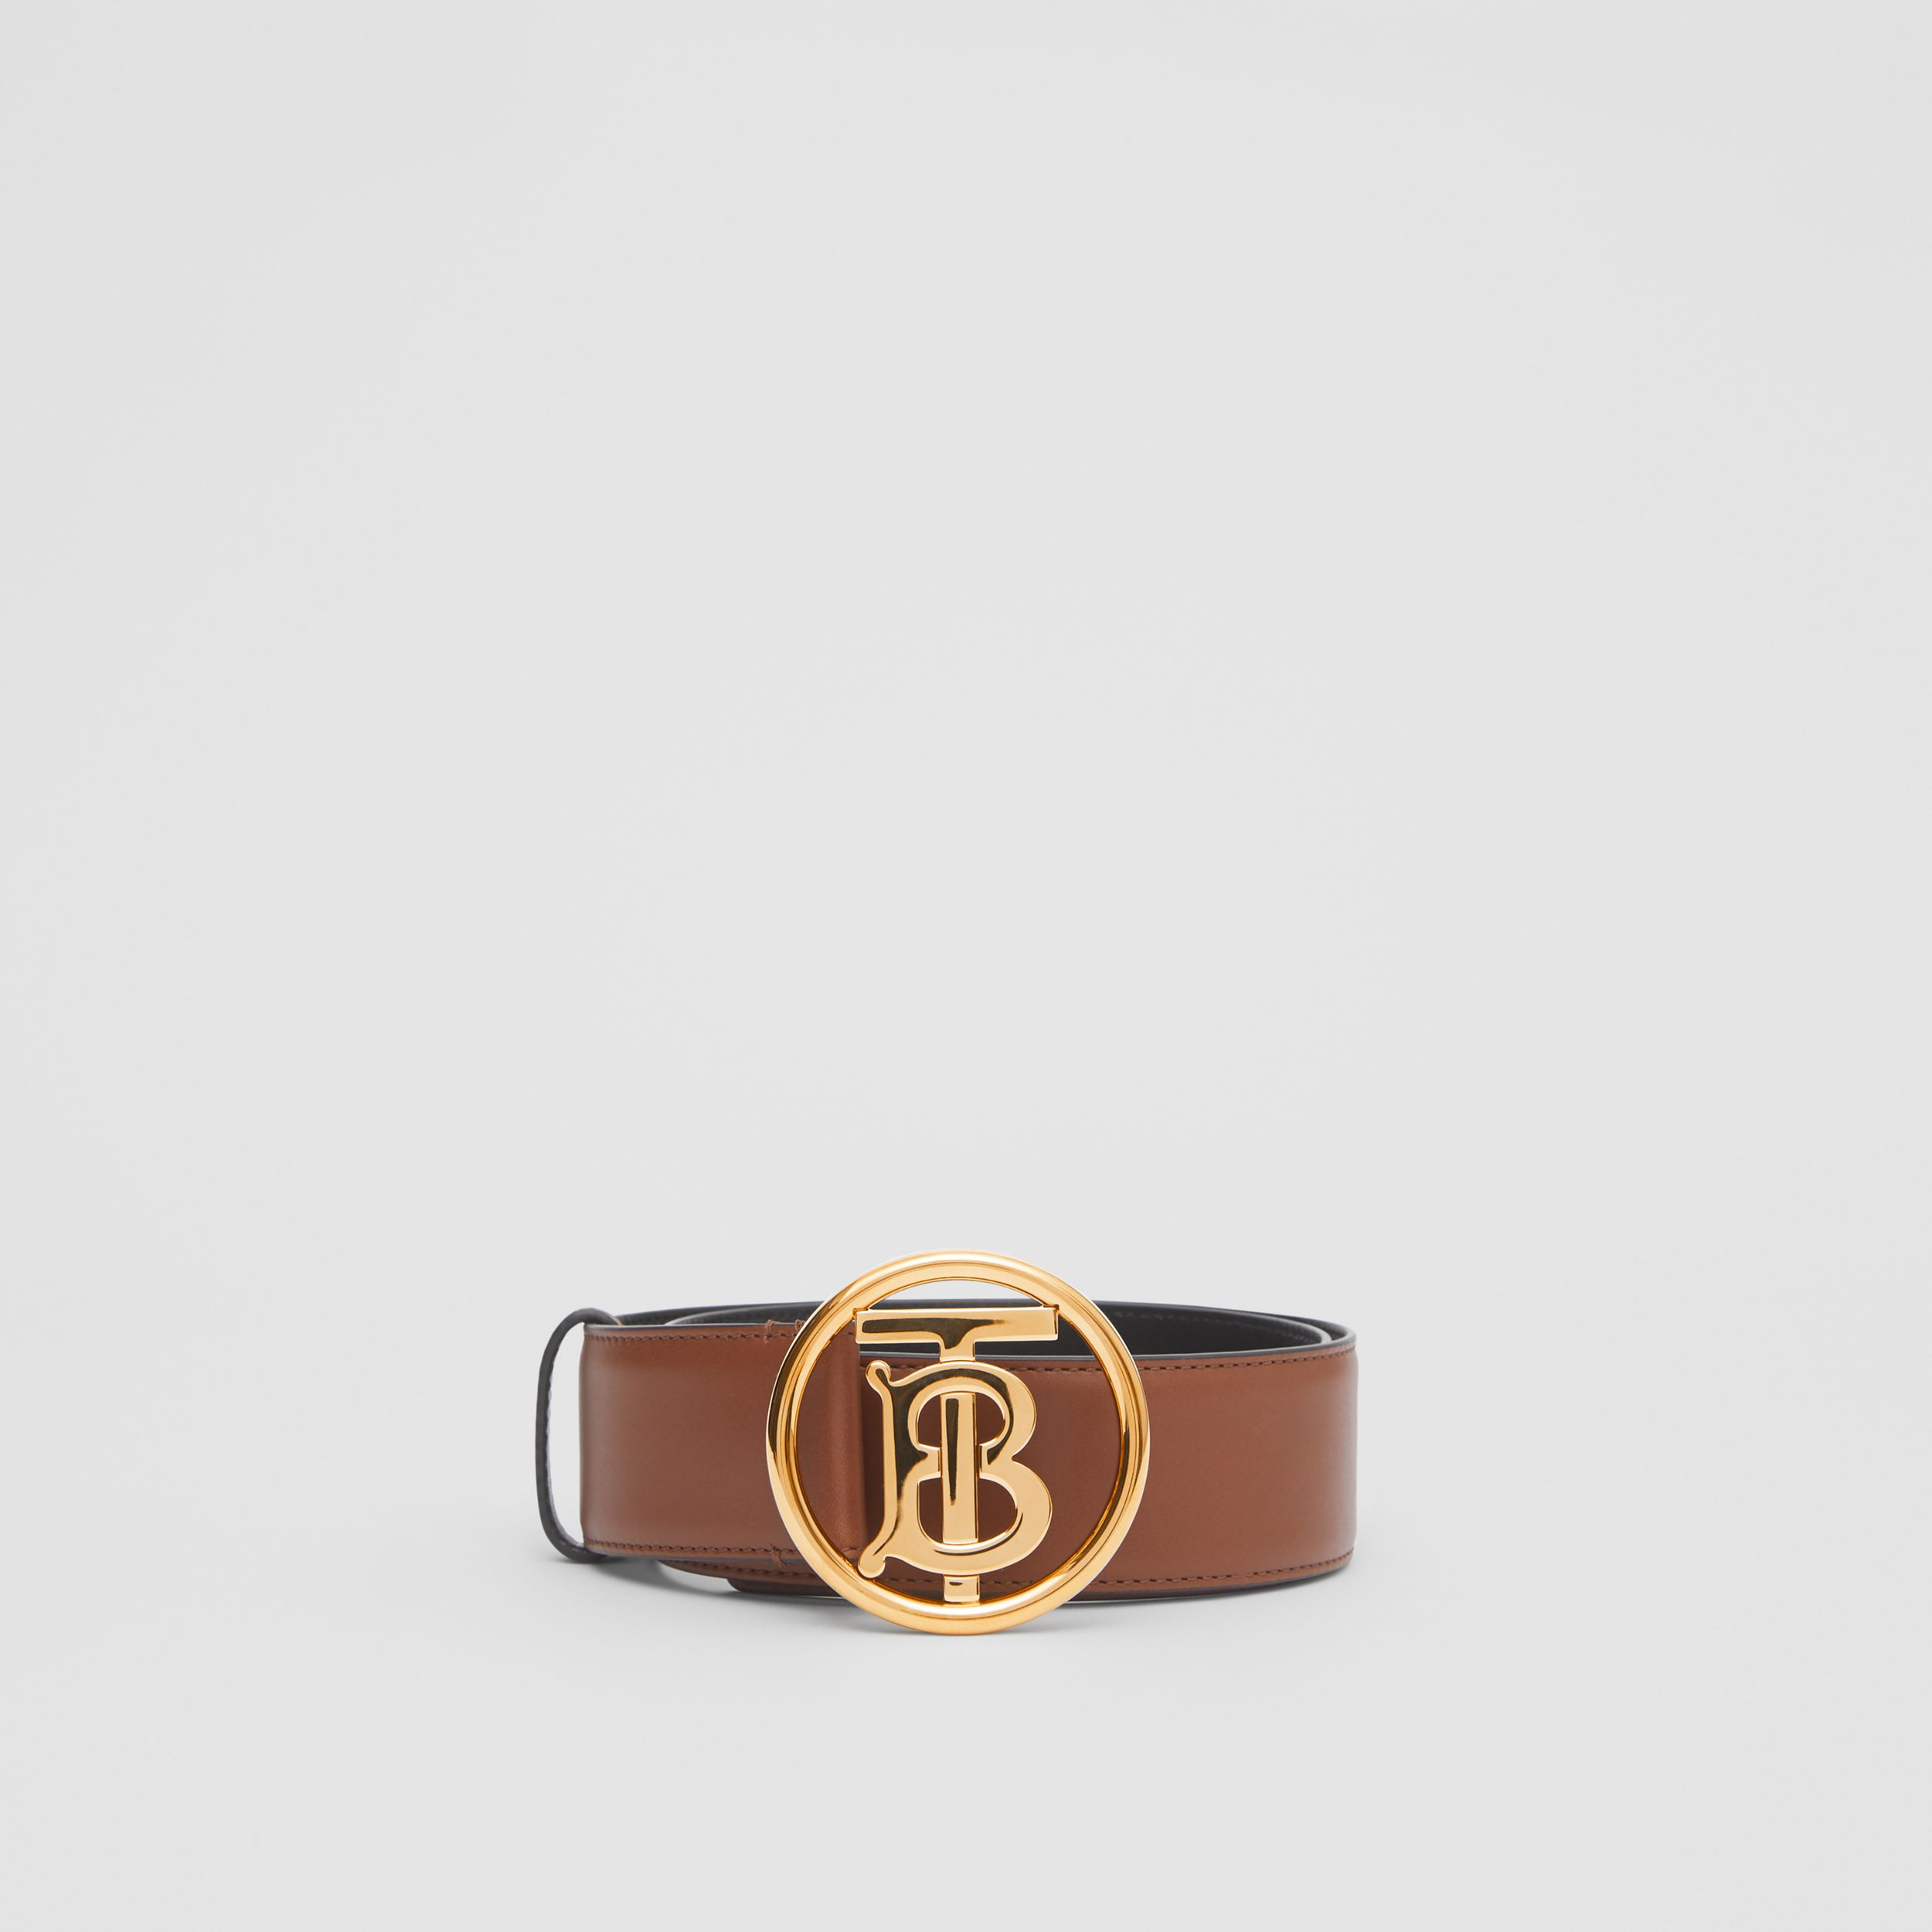 Monogram Motif Leather Belt in Tan/antique Dark Brass | Burberry - 3